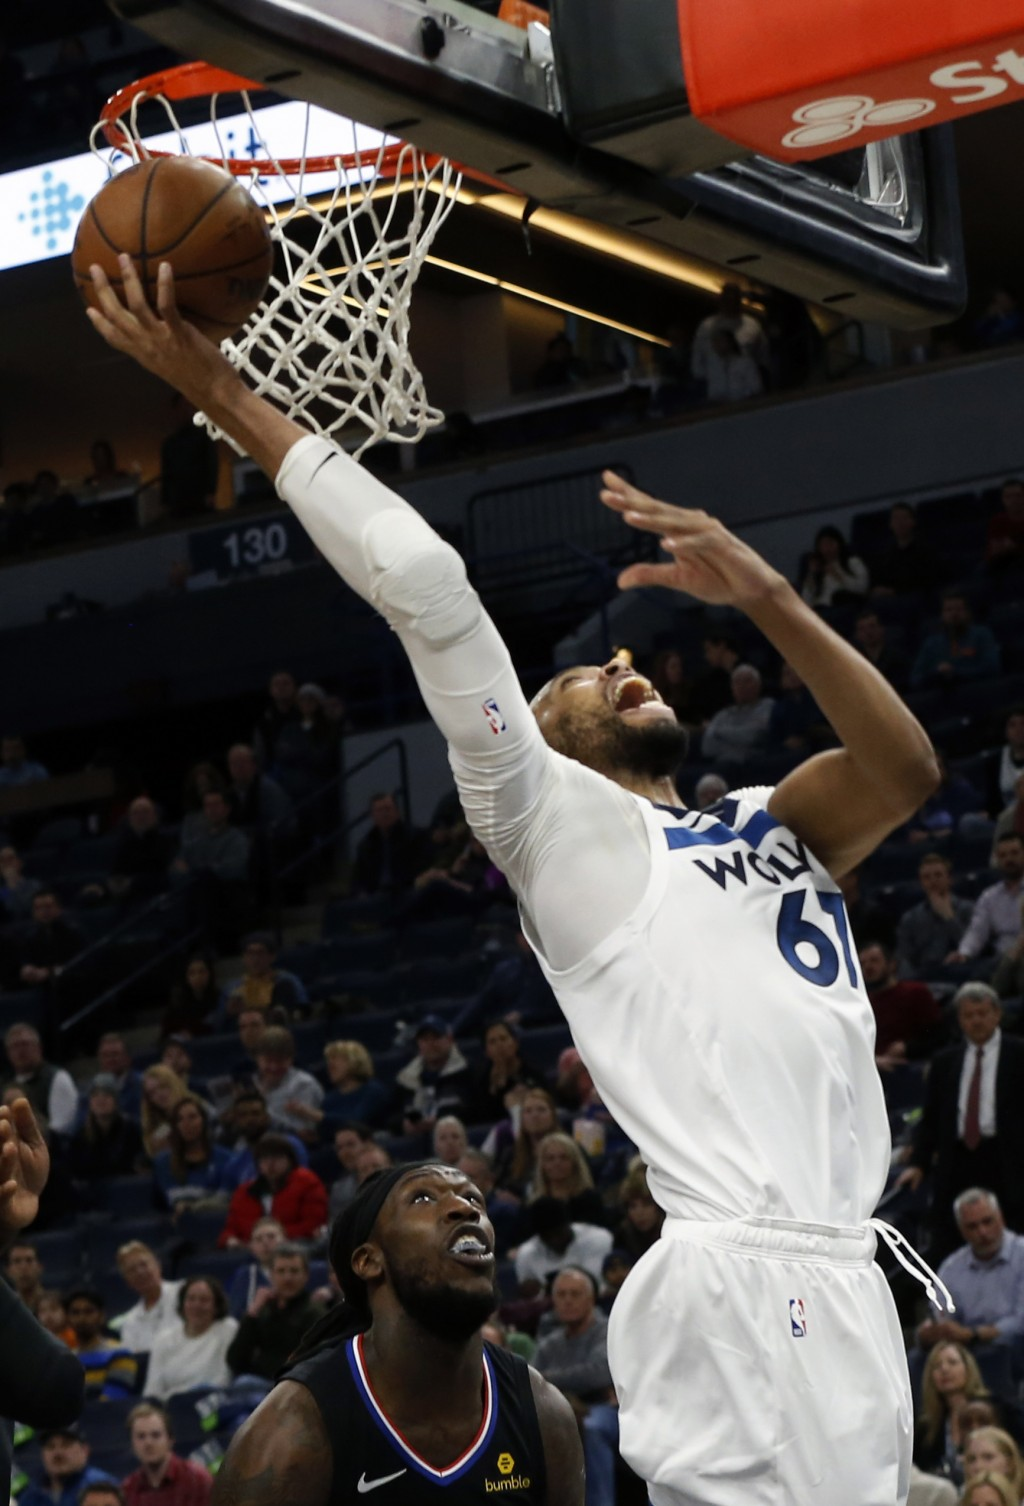 Minnesota Timberwolves' Taj Gibson lays up a shot against the Los Angeles Clippers in the first half of an NBA basketball game Monday, Feb. 11, 2019,